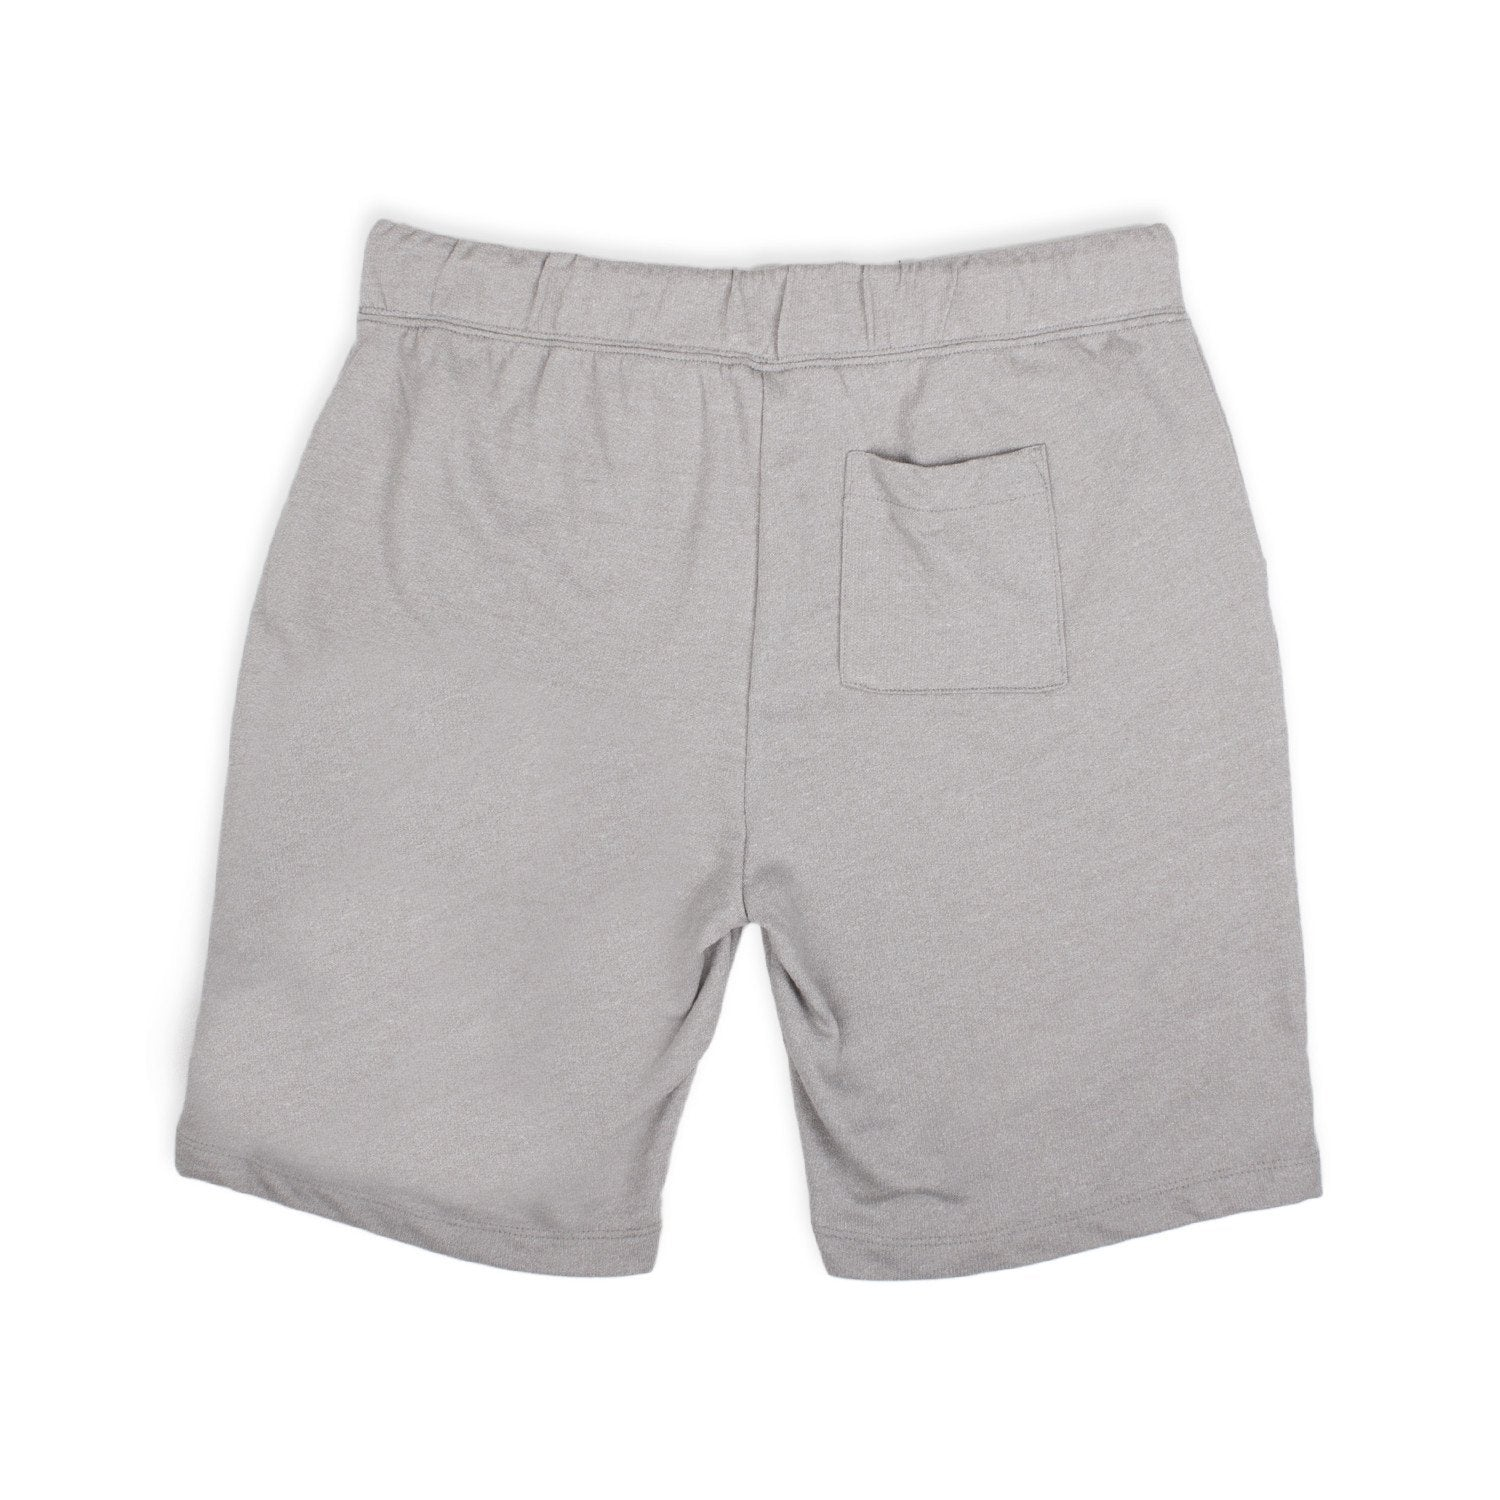 Andy Mineo 'Skull' Triple Double Shorts - Back